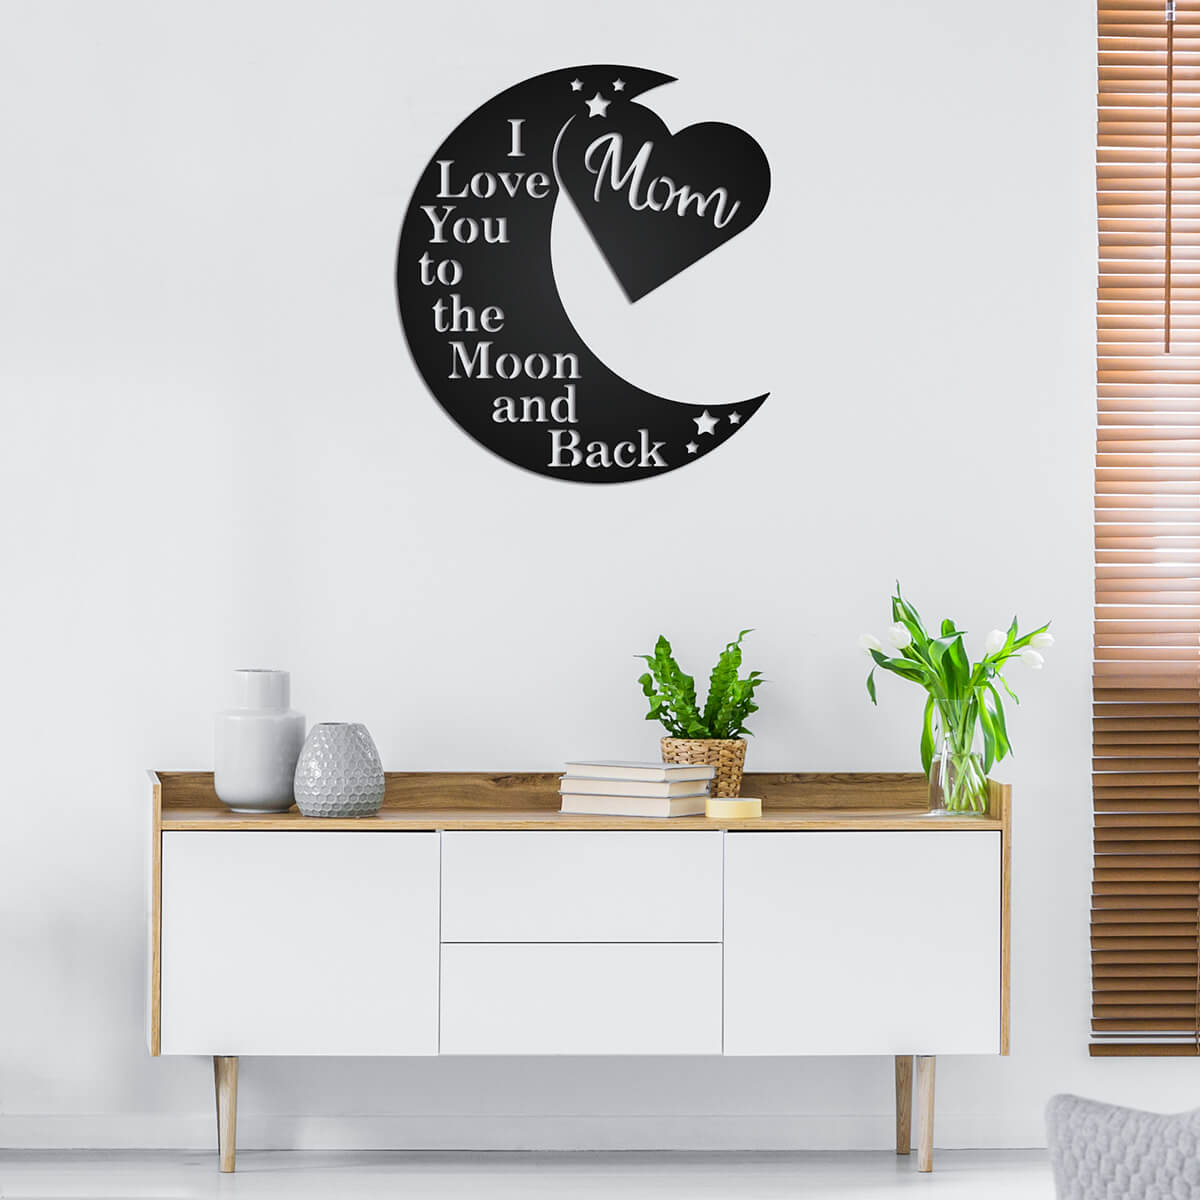 Love You To The Moon Wall Art - Mom Ltd  - RealSteel Center